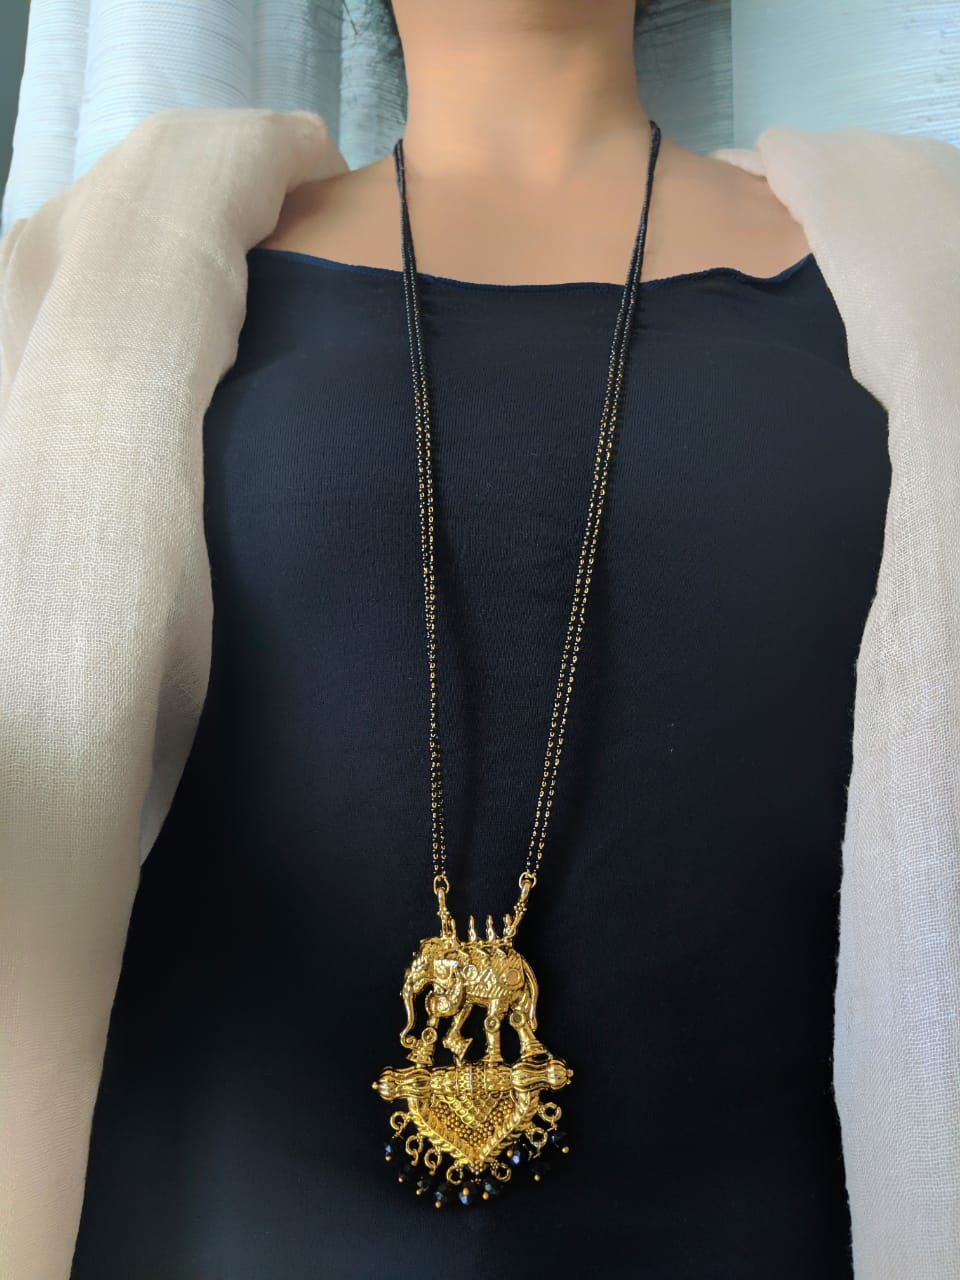 Long Mangalsutra Designs Gold Plated Latest Elephant Style Pendant Mangalsutra - DigitalDressRoom